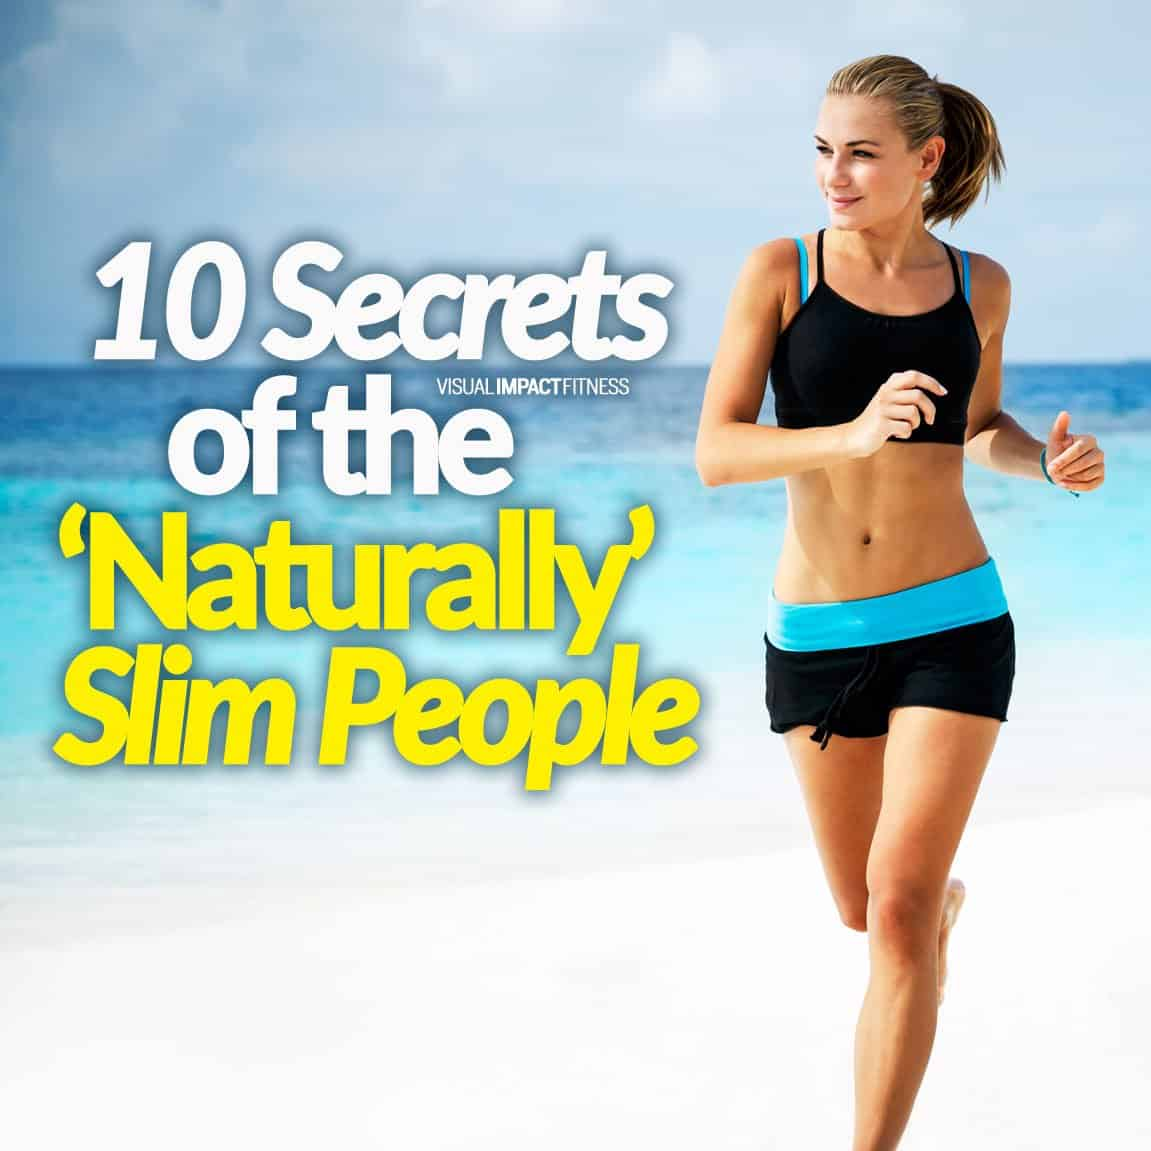 10 Secrets of the 'Naturally' Slim People